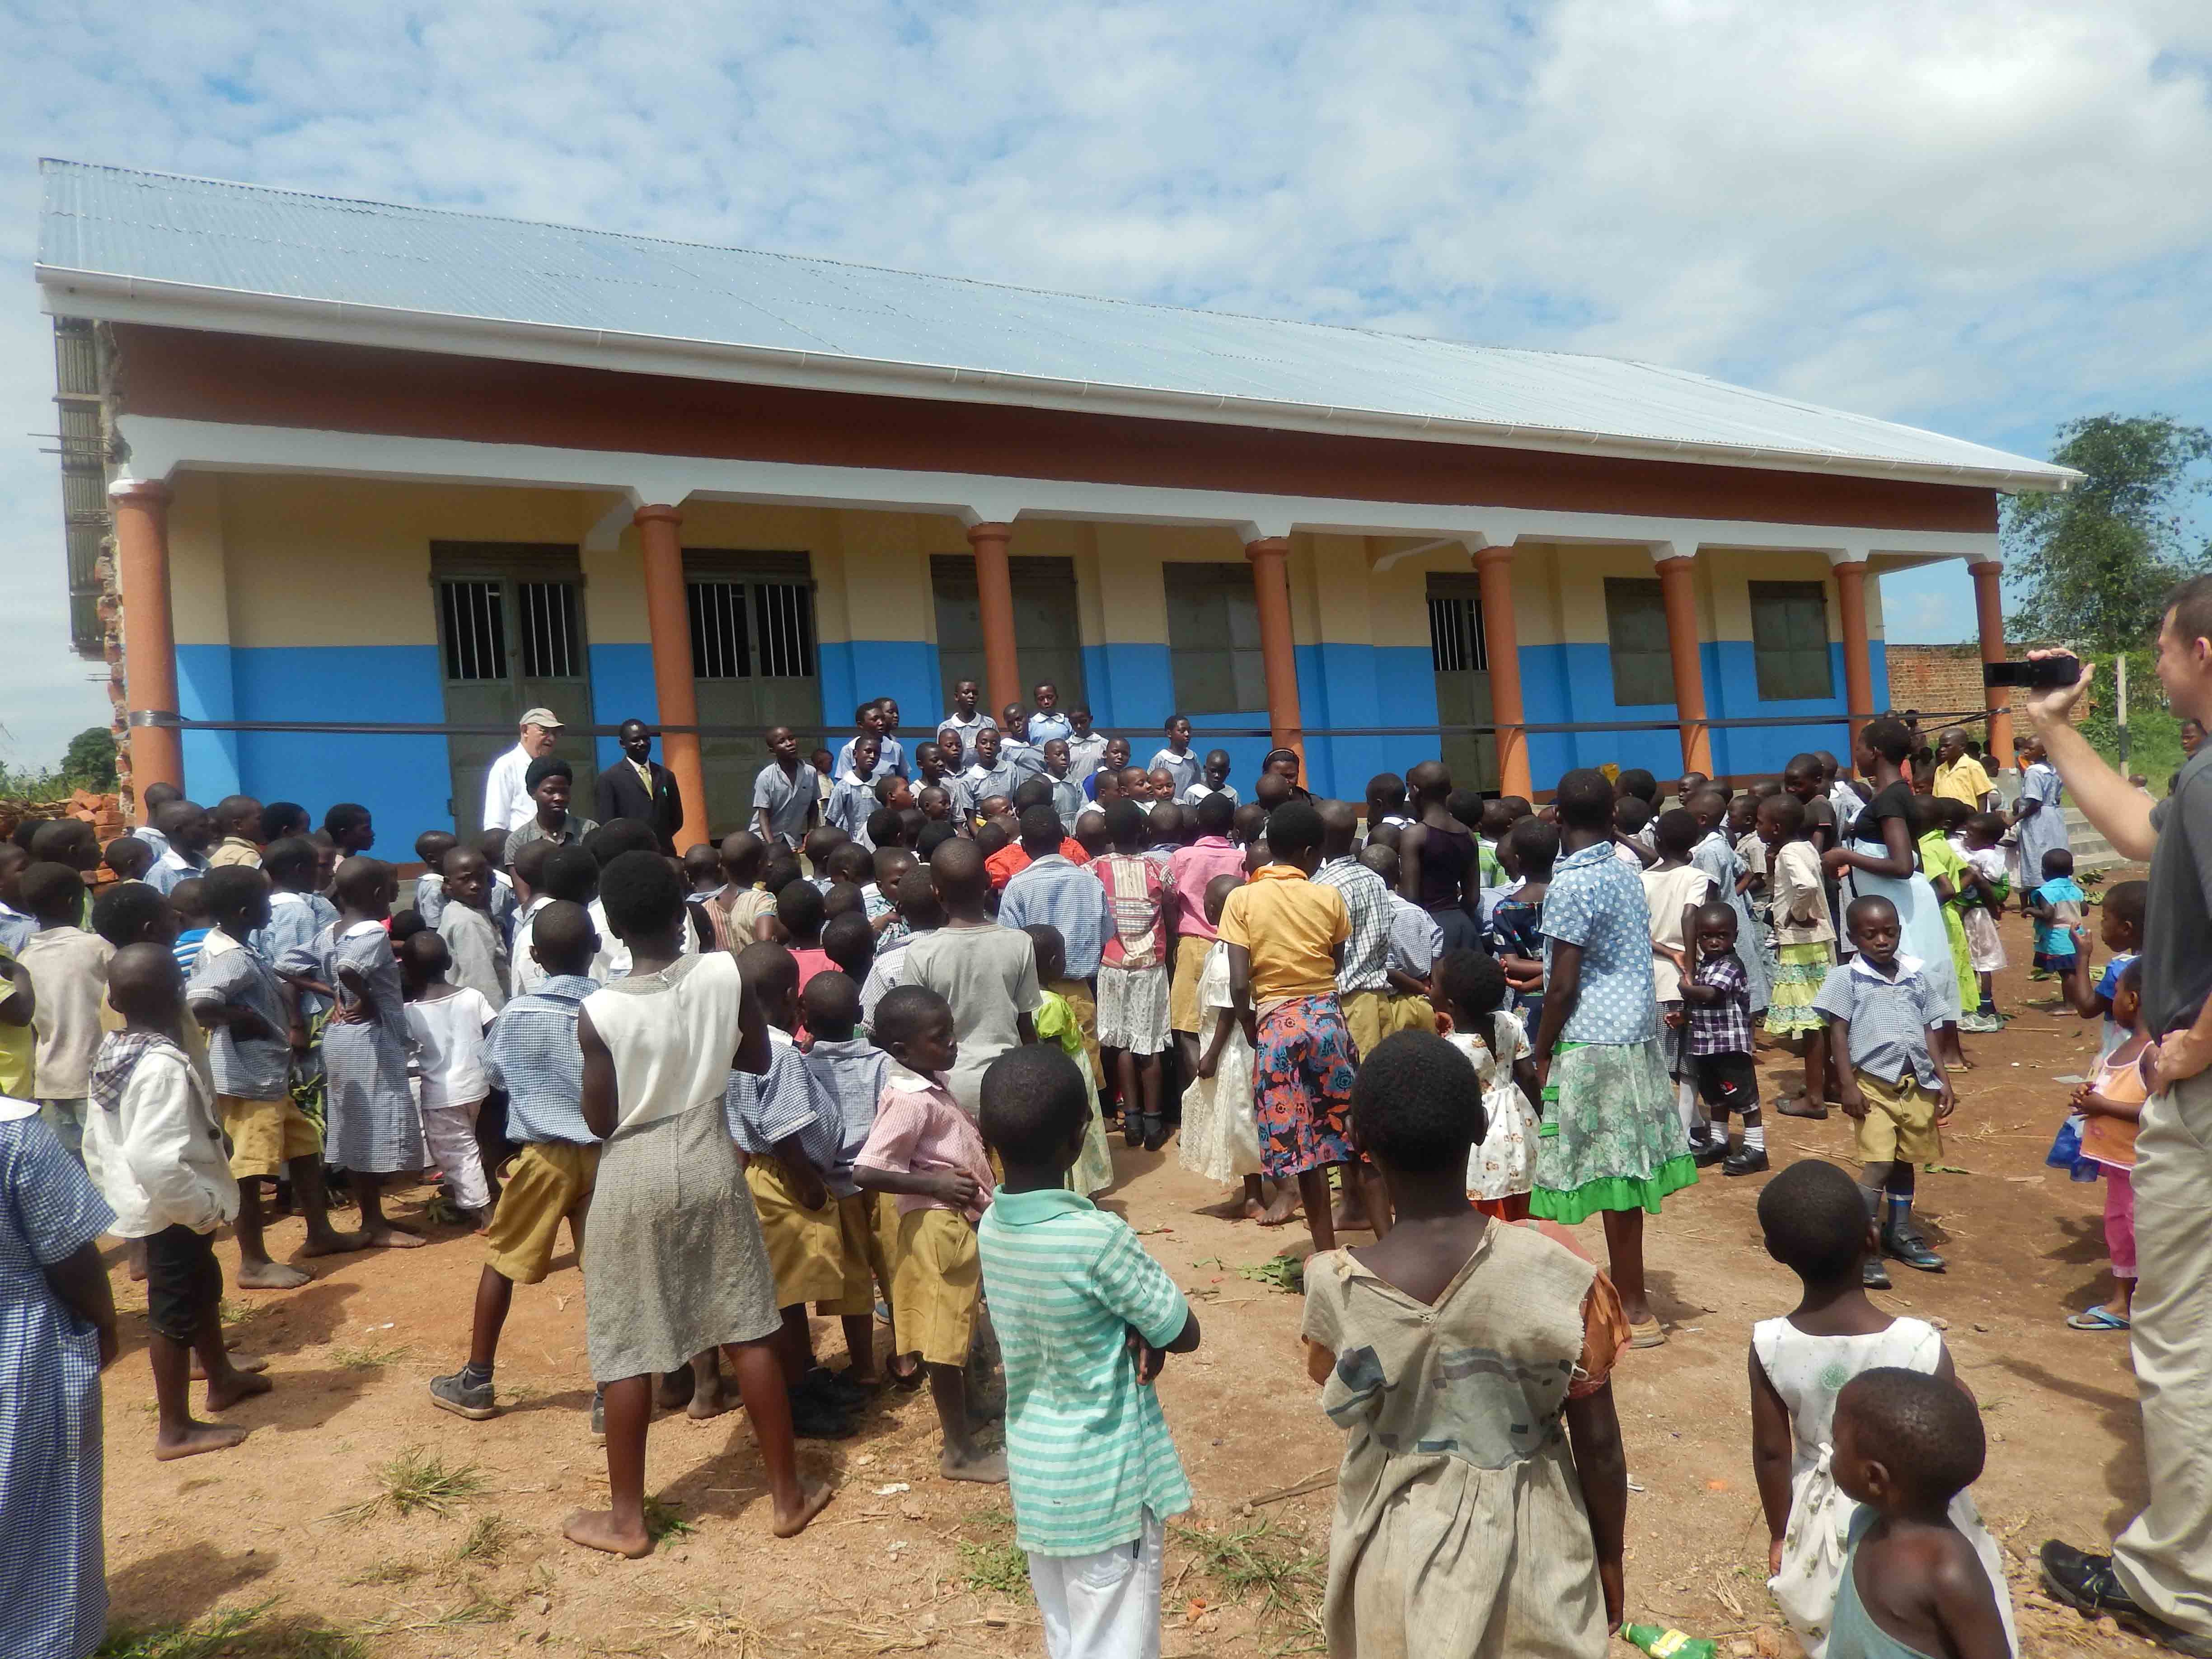 Uganda School Buildings